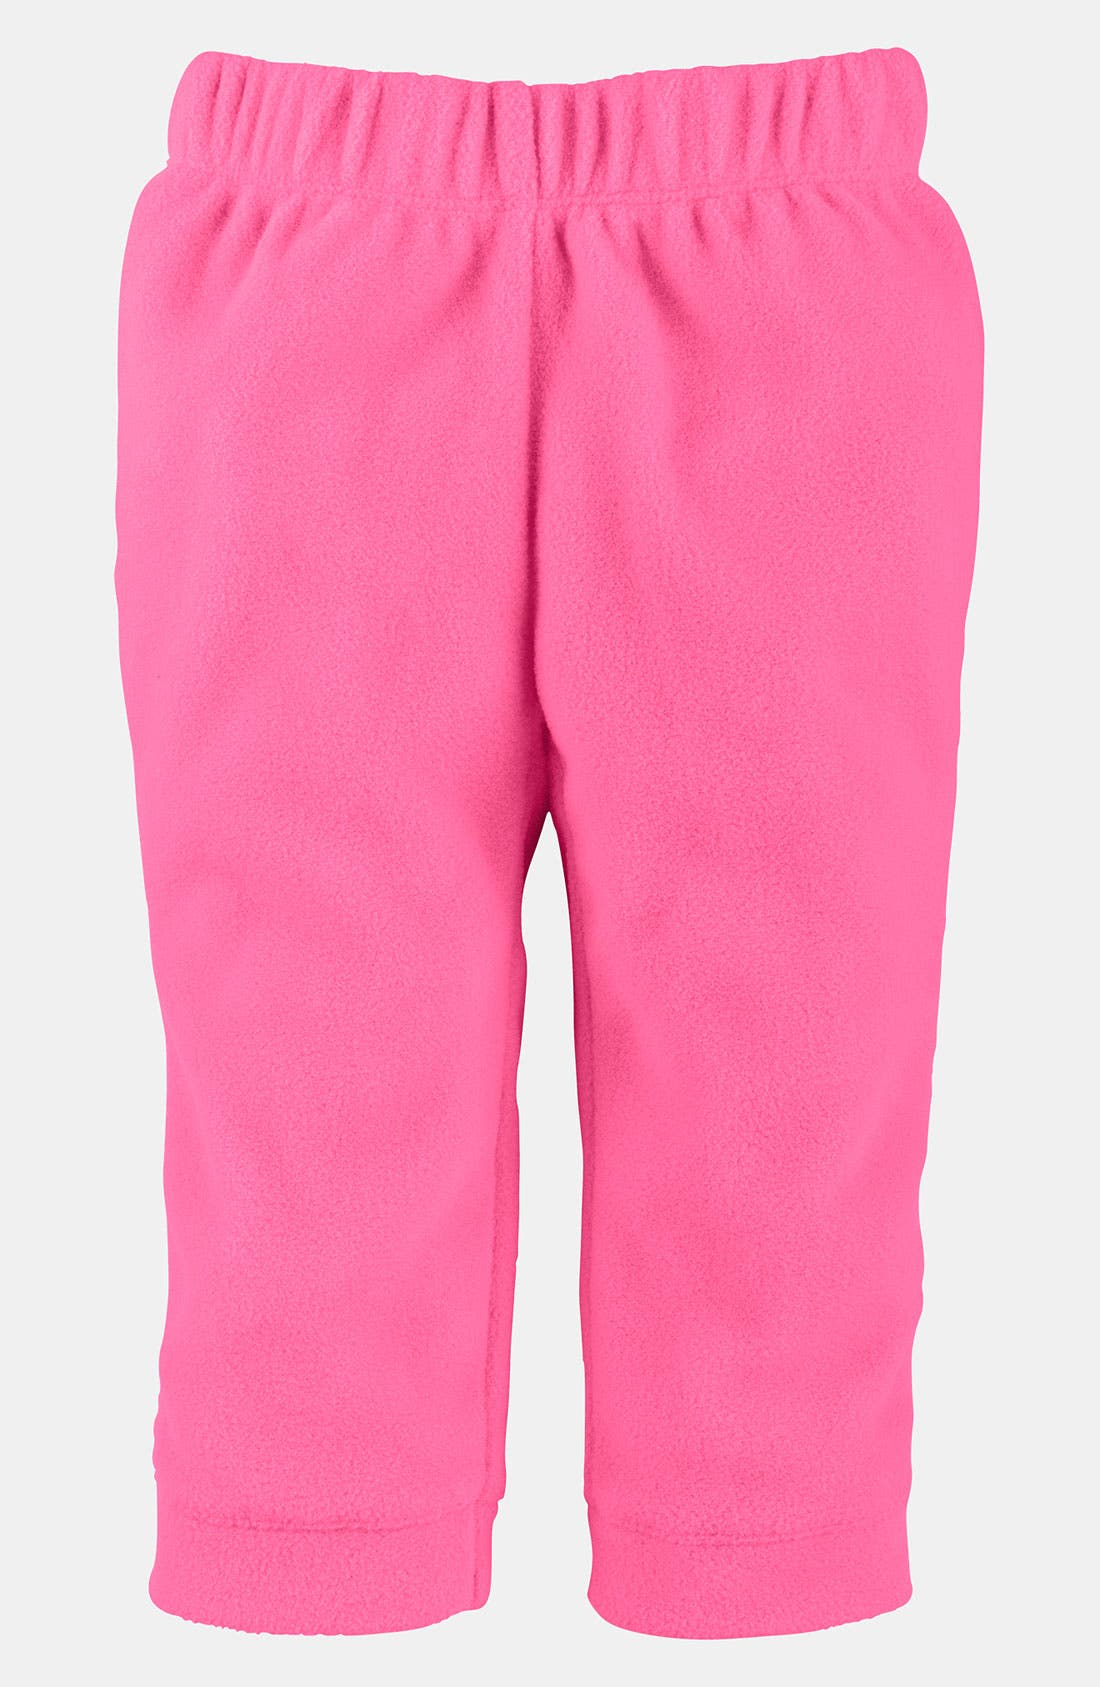 Main Image - The North Face 'Glacier' Pants (Baby)